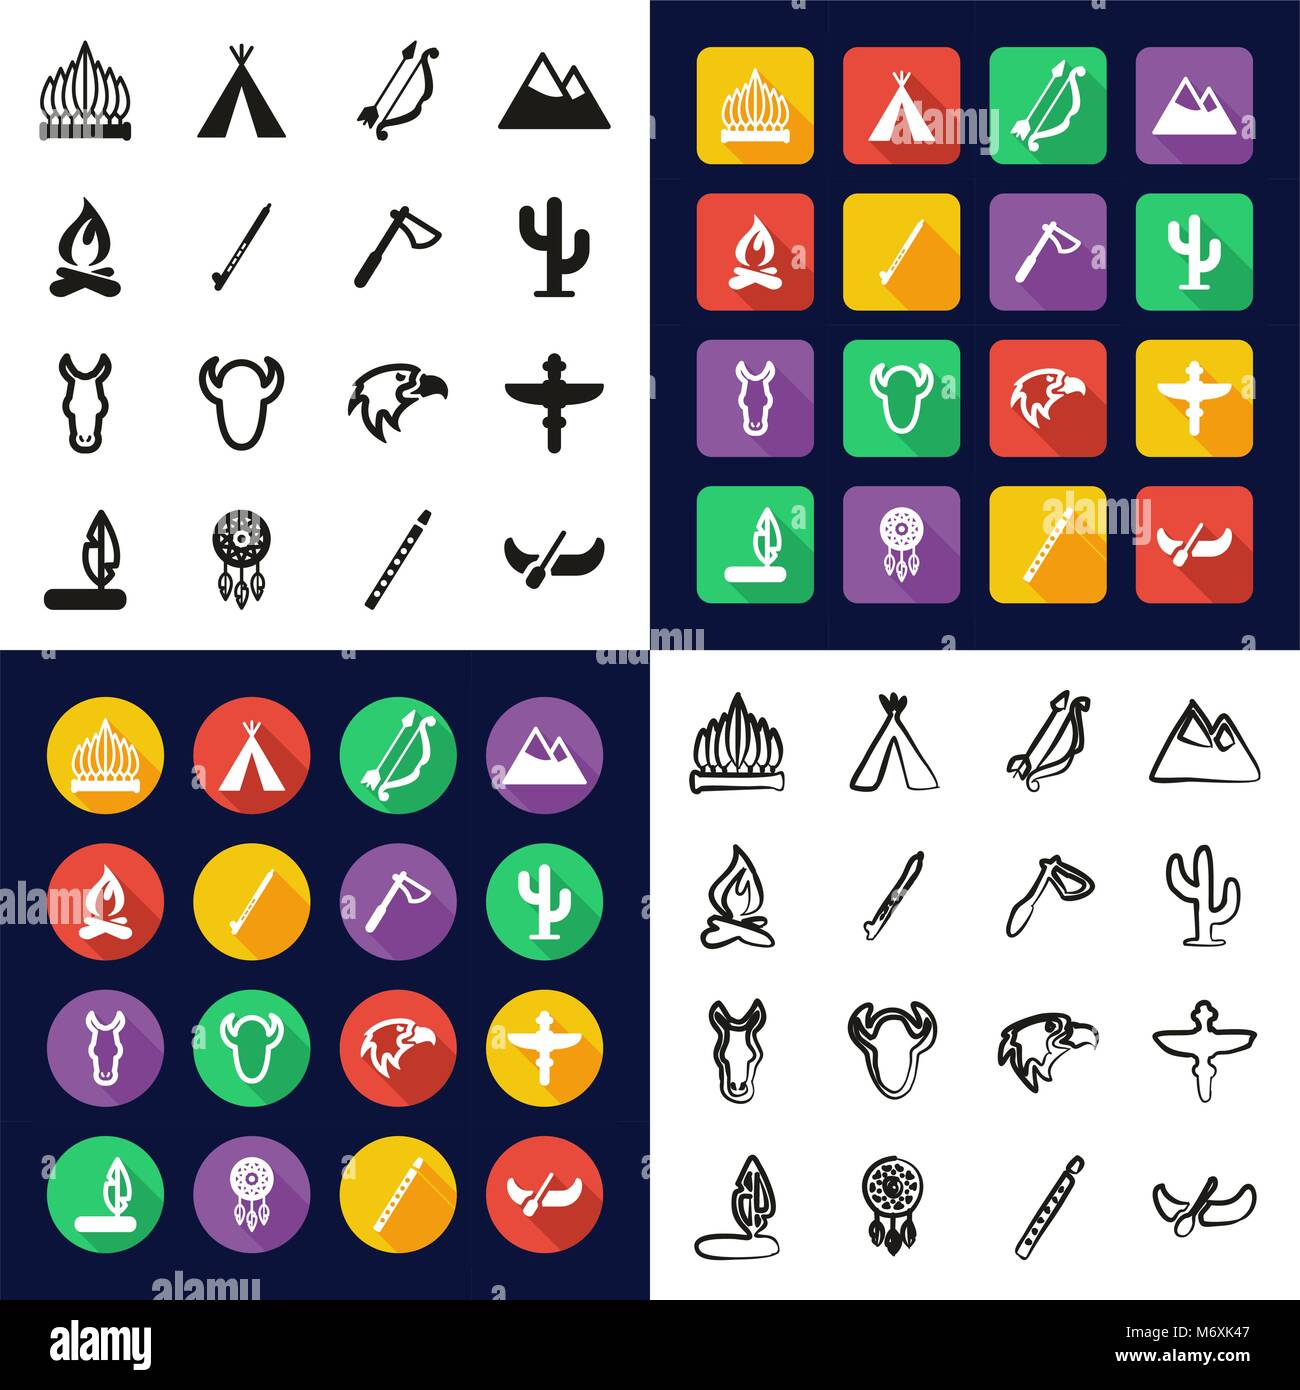 Native American All in One Icons Black & White Color Flat Design Freehand Set - Stock Vector